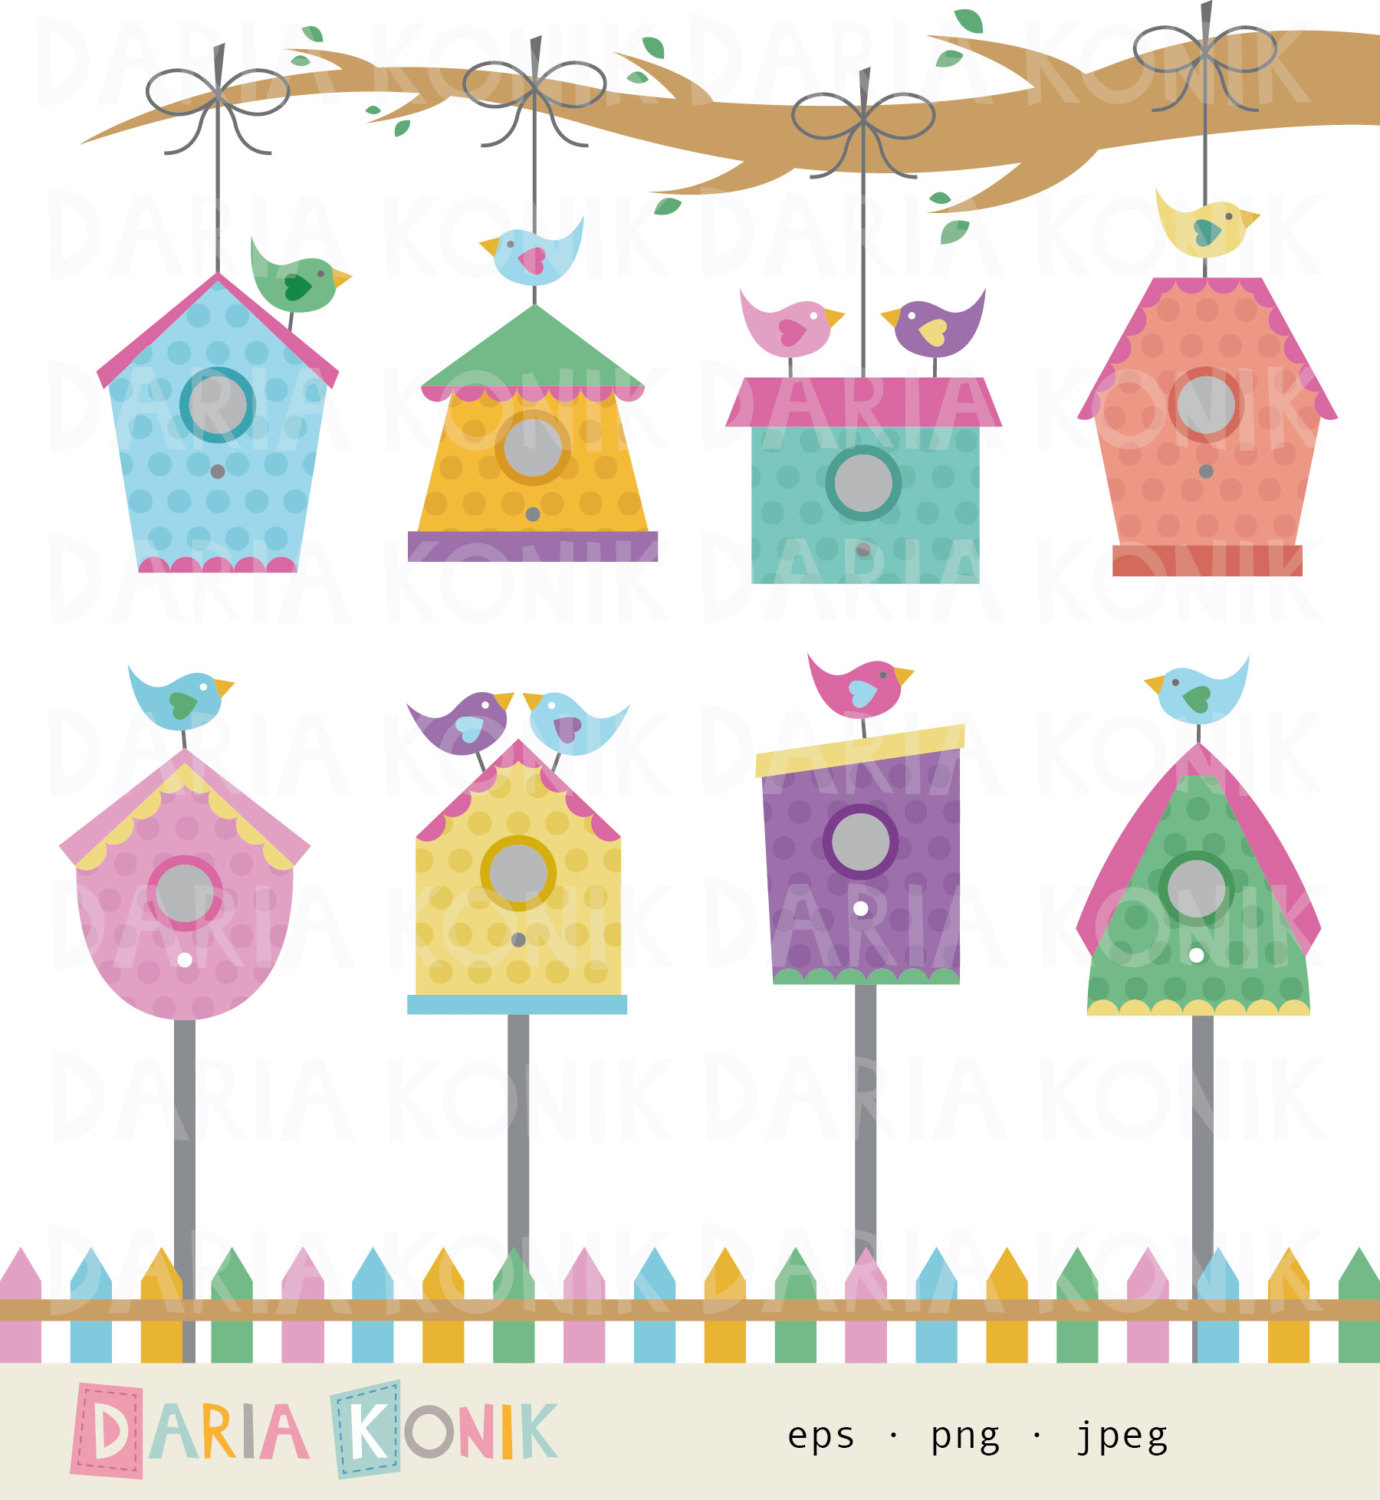 Free jpeg clipart graphic download Birdhouse Free Downloads Clipart graphic download